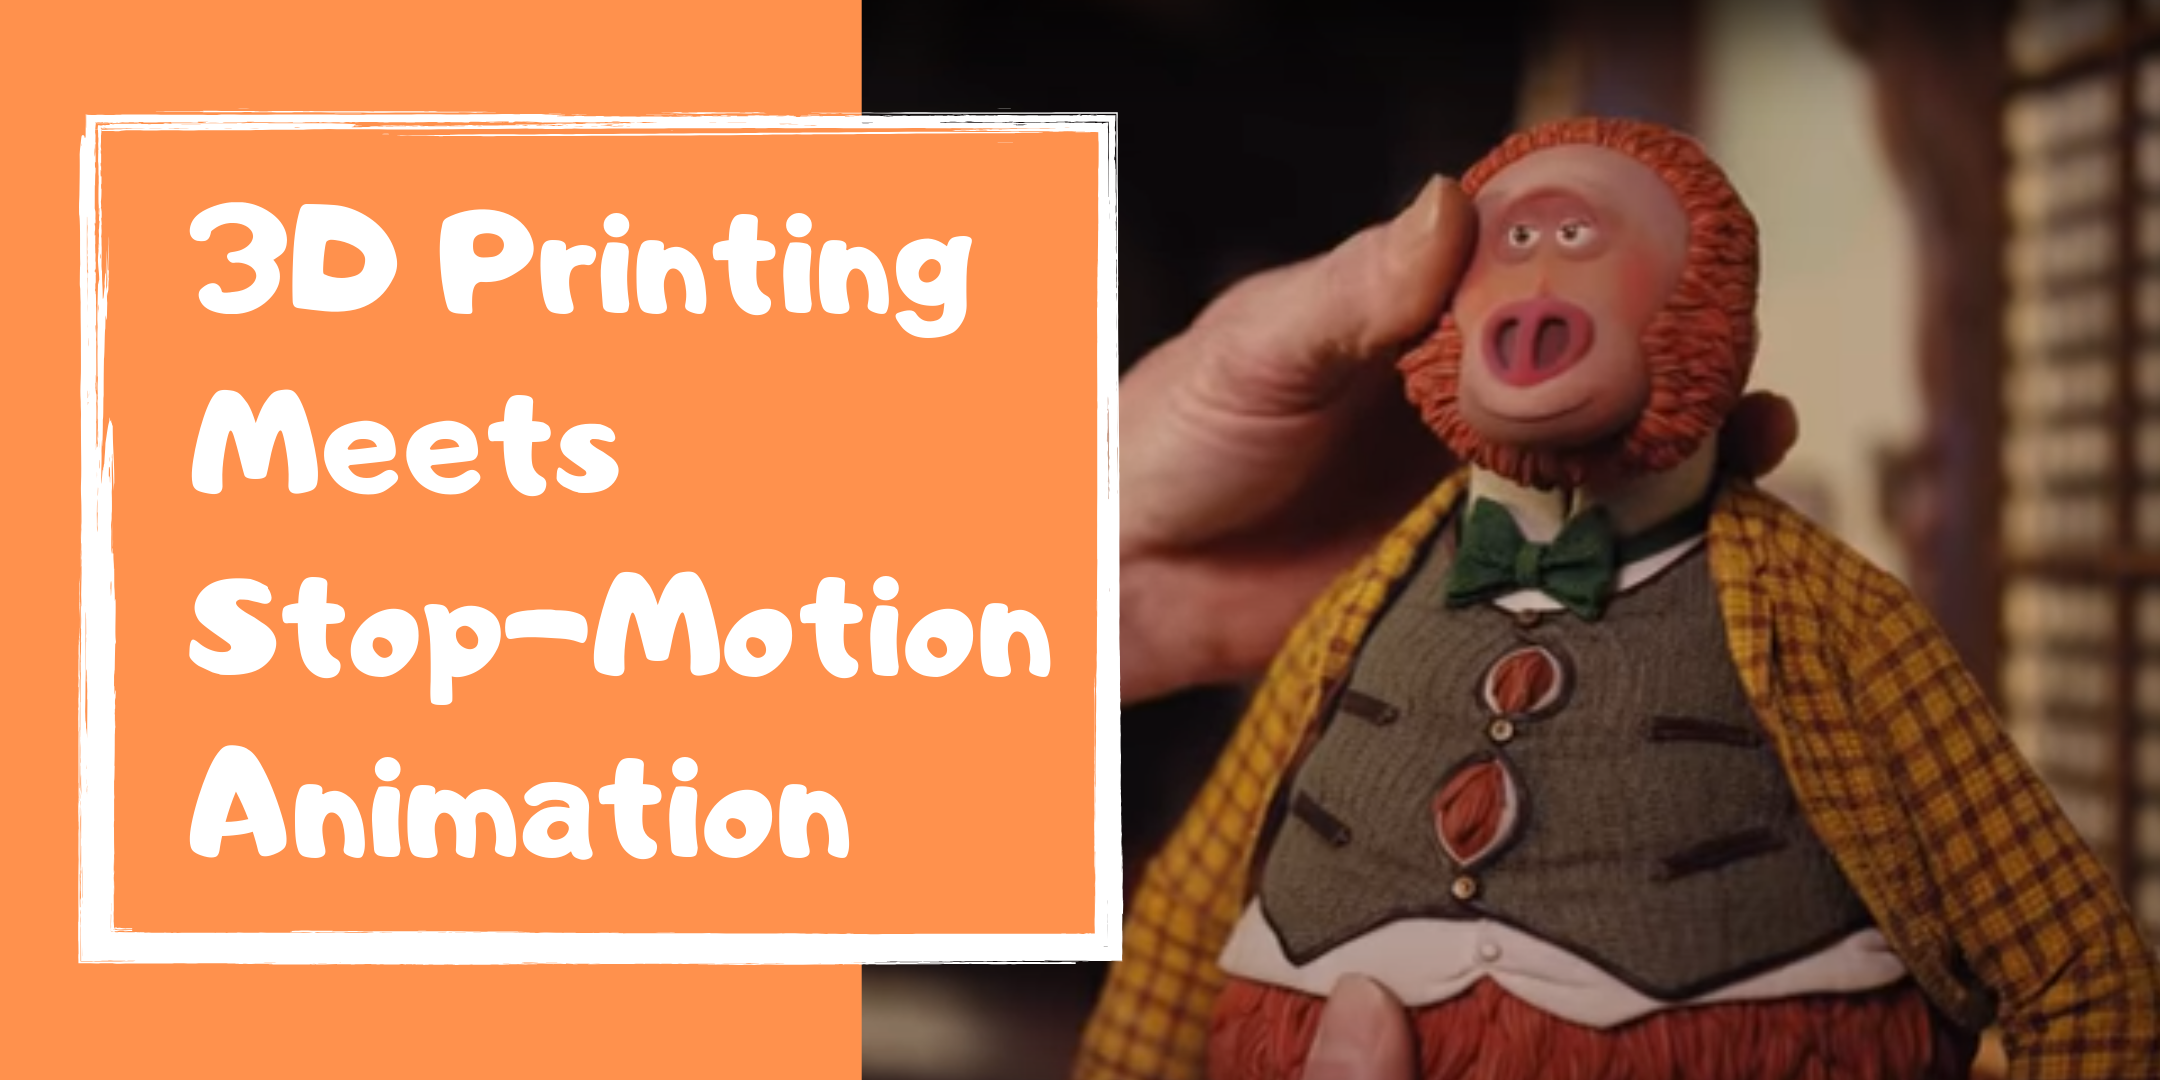 3D Printing Meets Stop-Motion Animation